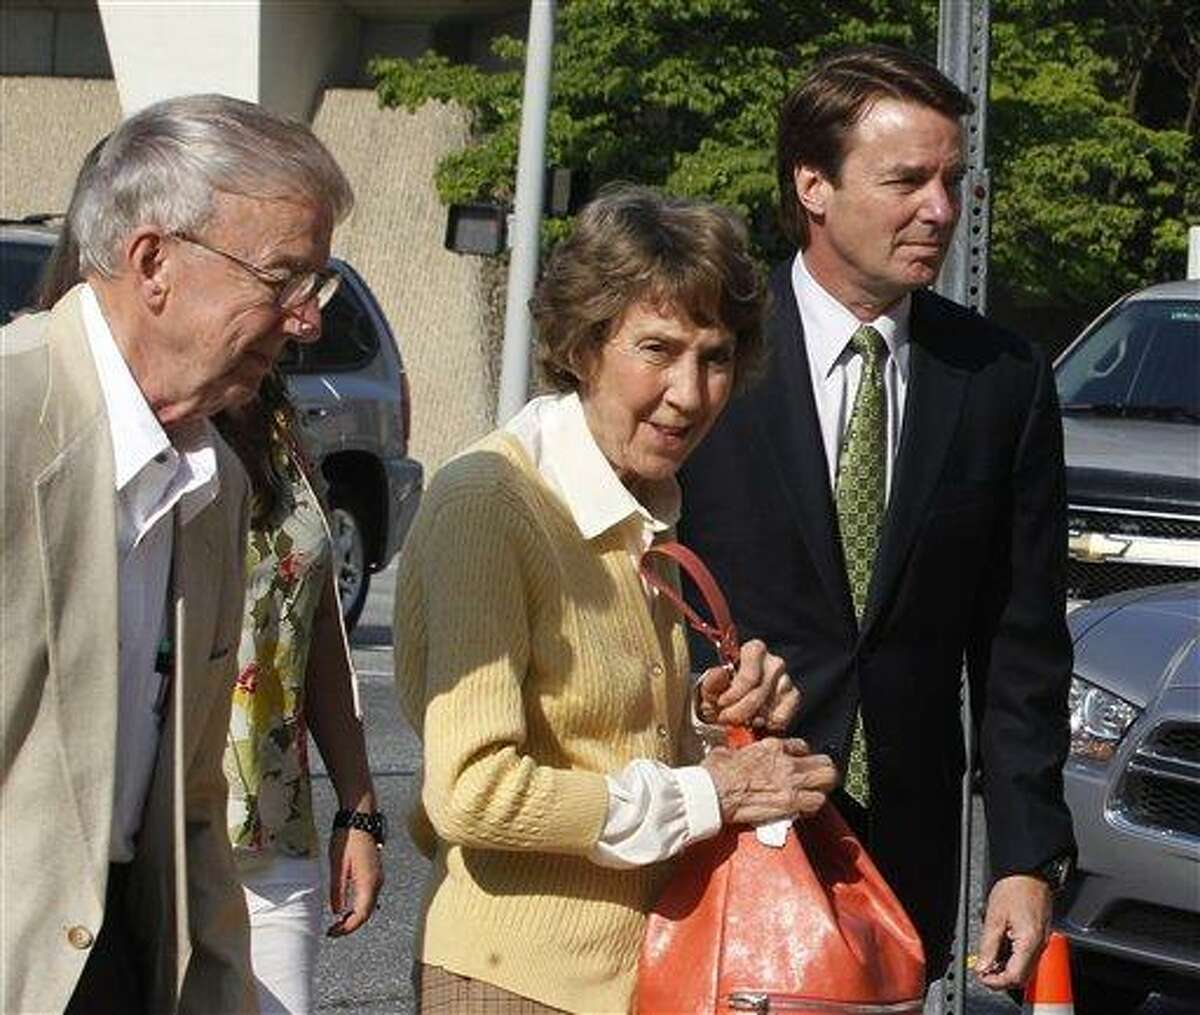 Former Sen. John Edwards, right, leads his mother, Bobbie Edwards, center, and father, Wallace Edwards, into the Federal Courthouse in Greensboro, N.C. Tuesday. Associated Press